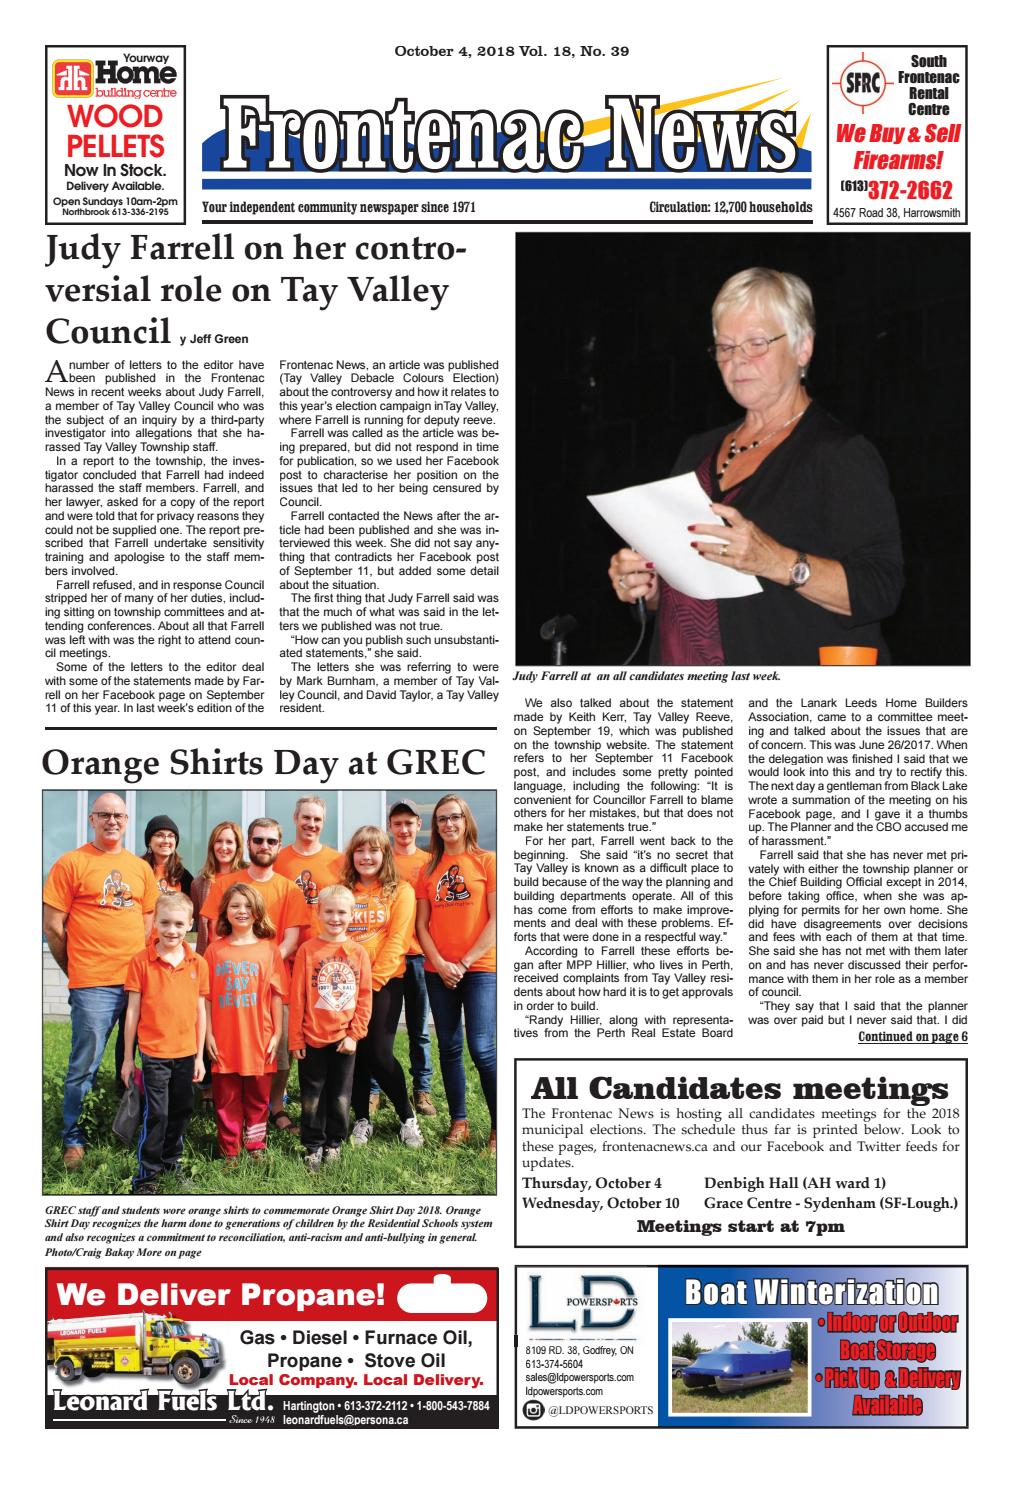 Vol.18 No.39 by Frontenac News - issuu 6bfce65ea576d